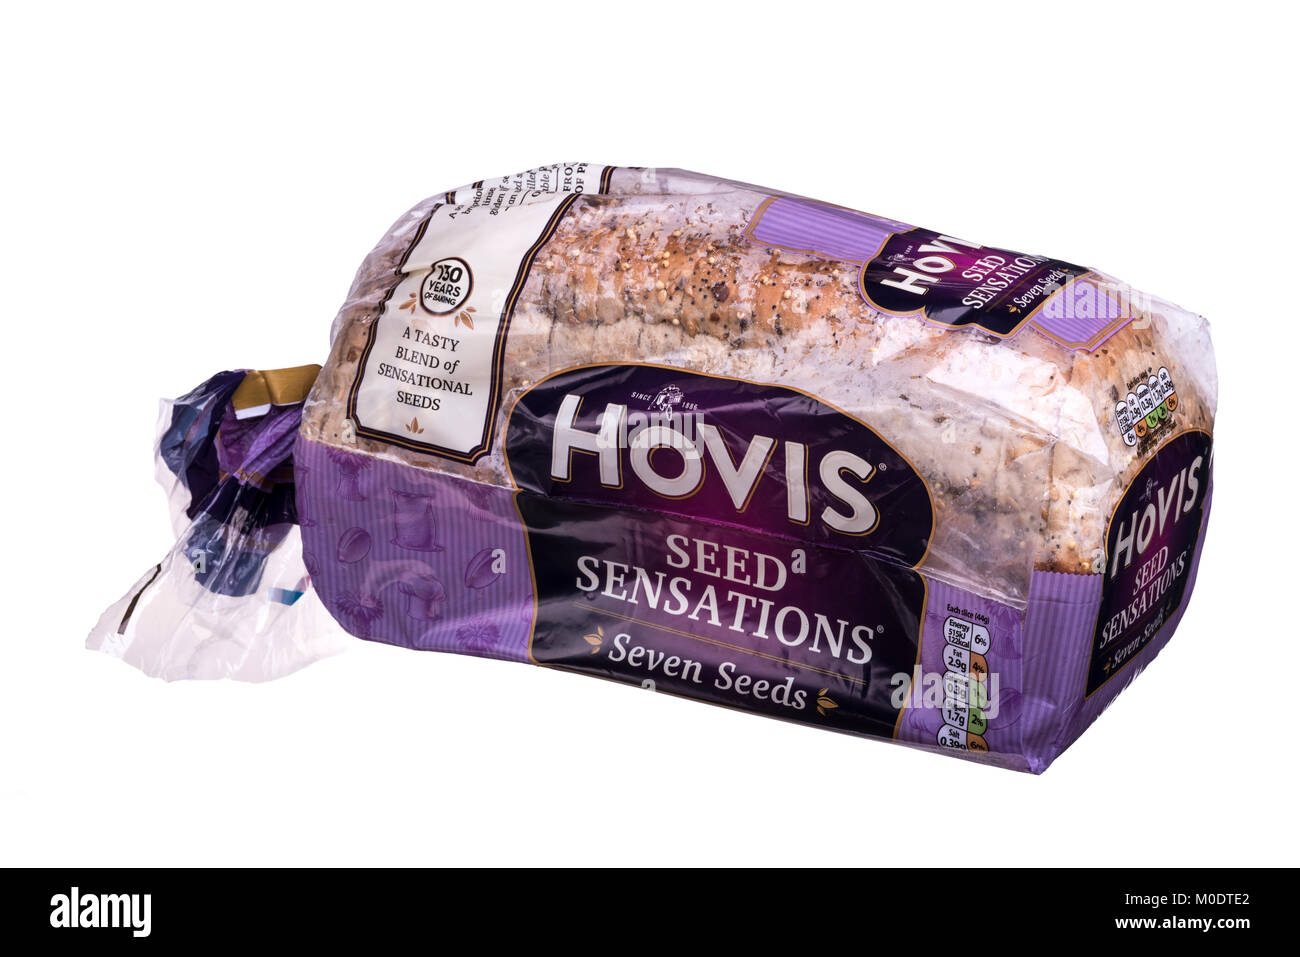 Hovis seed sensations sliced bread, wrapped in plastic. - Stock Image